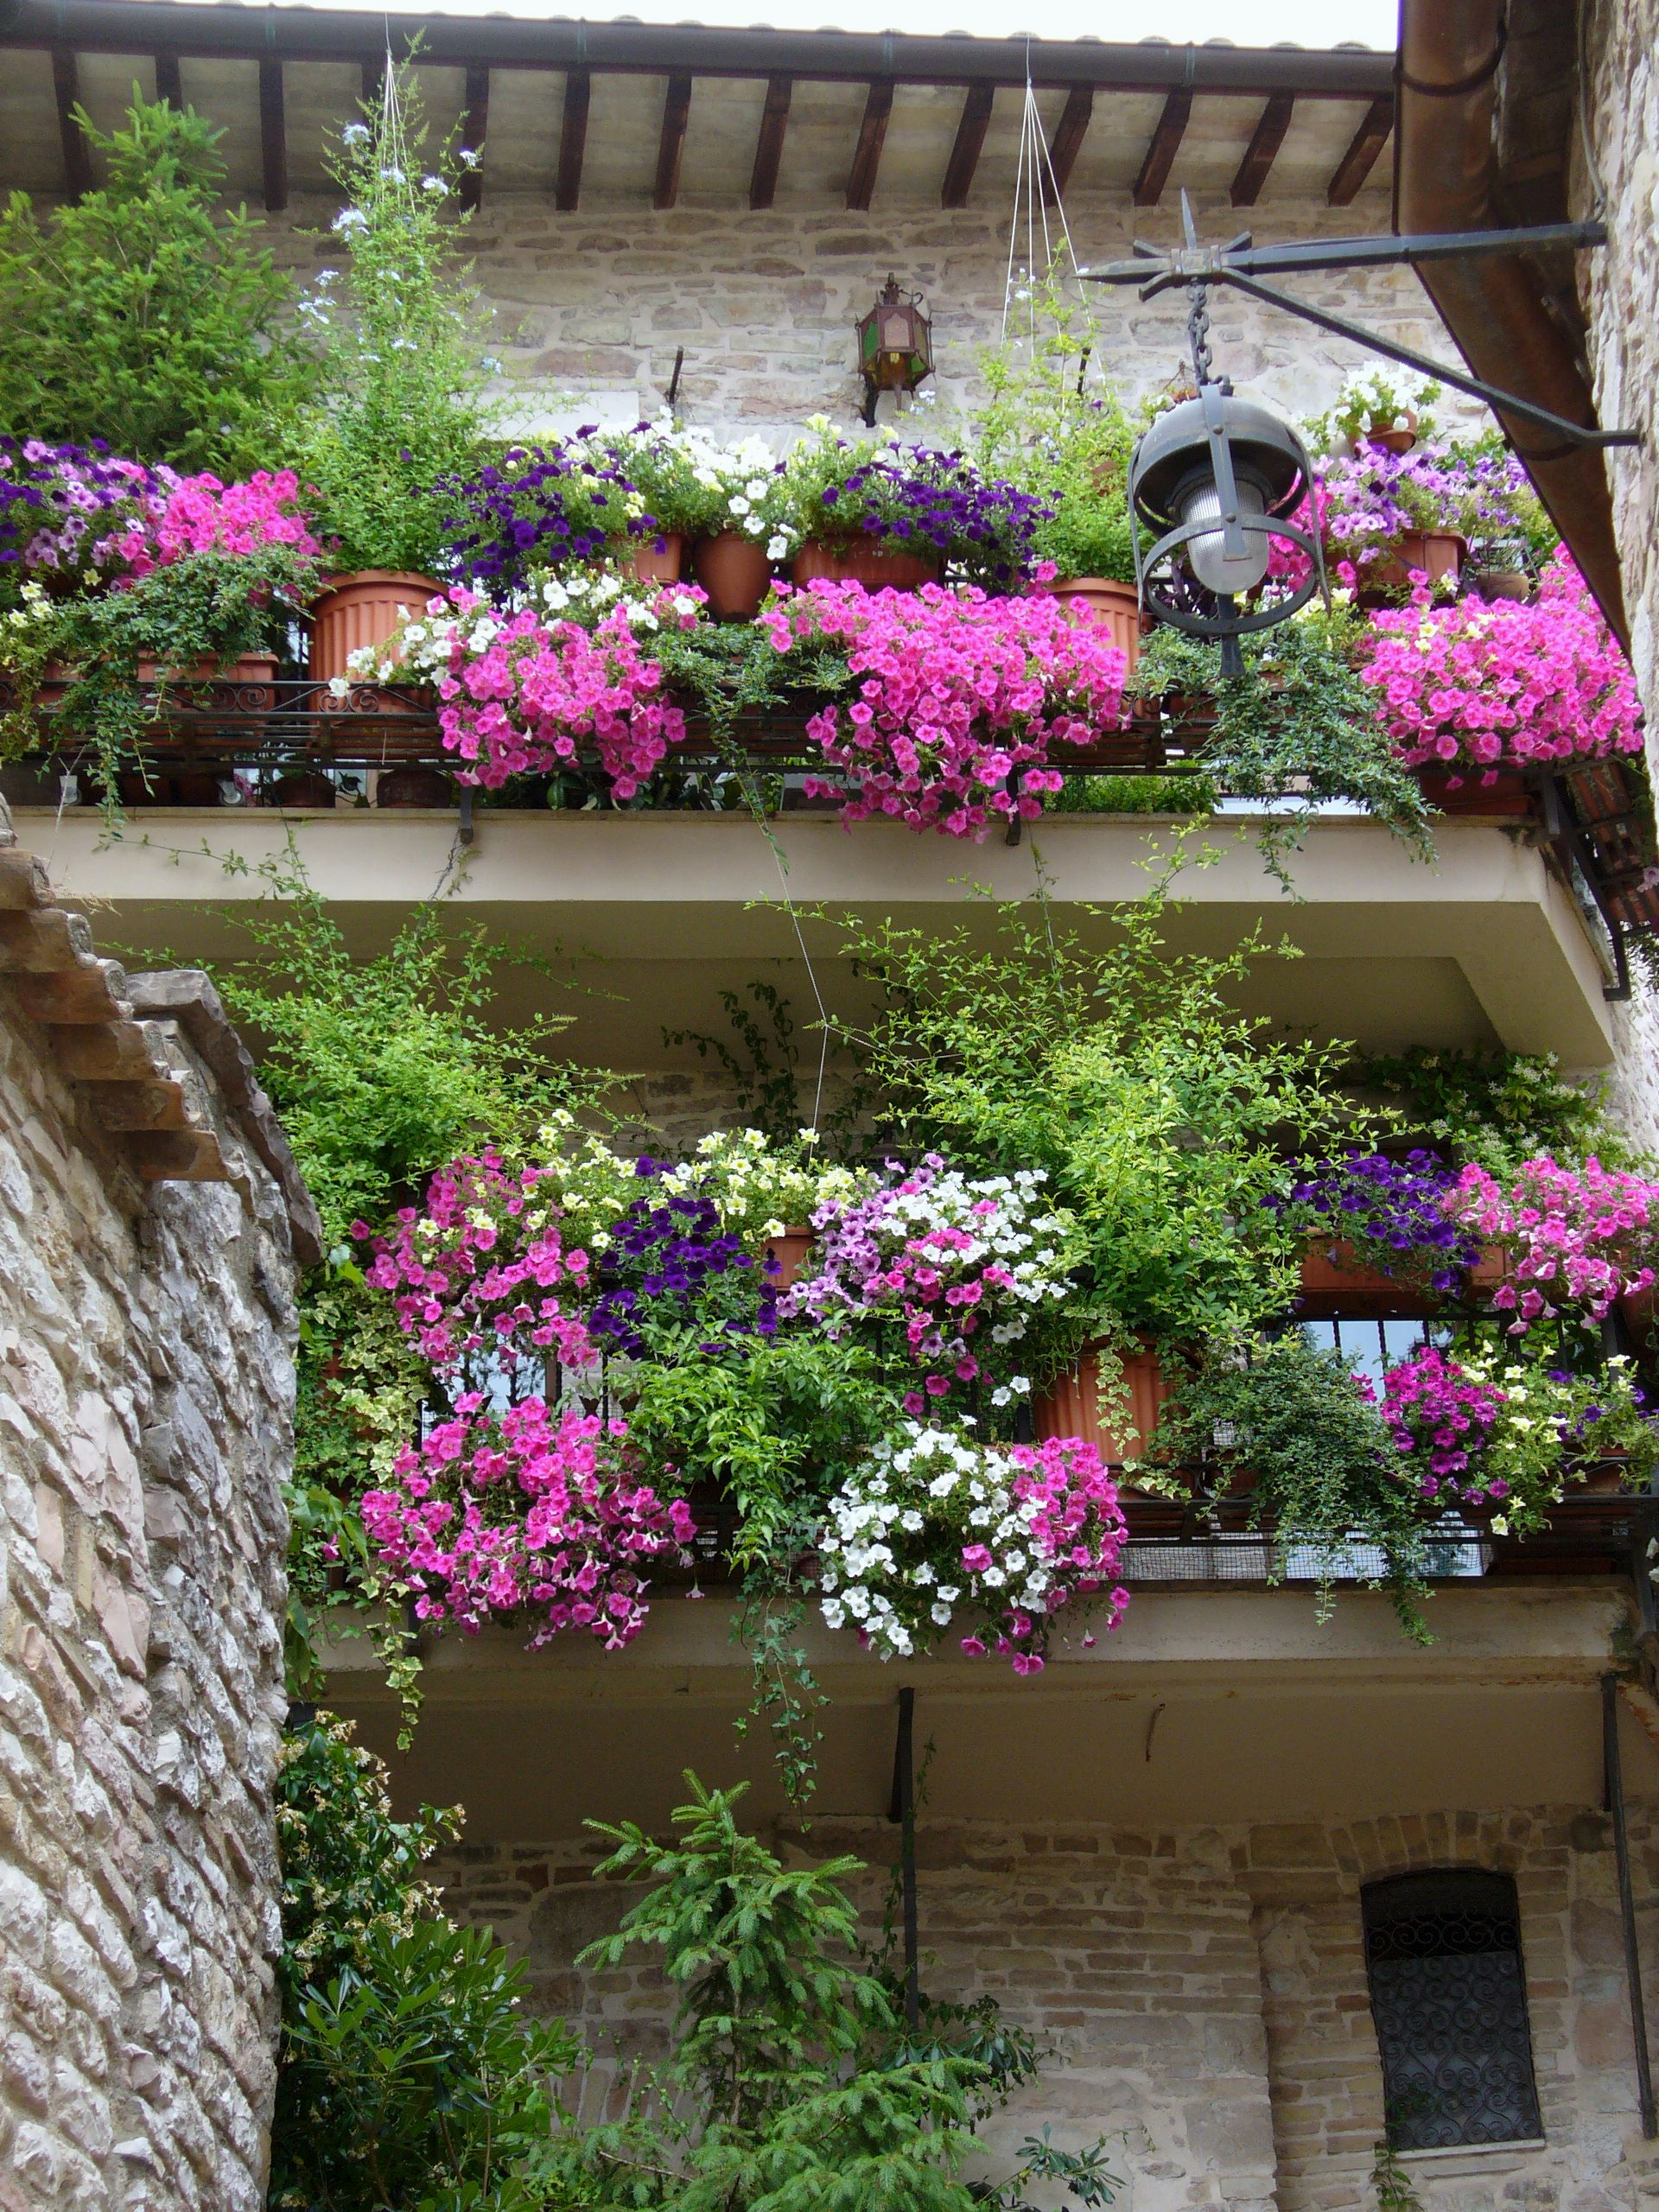 35 World 39 S Most Beautiful Balconies Your No 1 Source Of